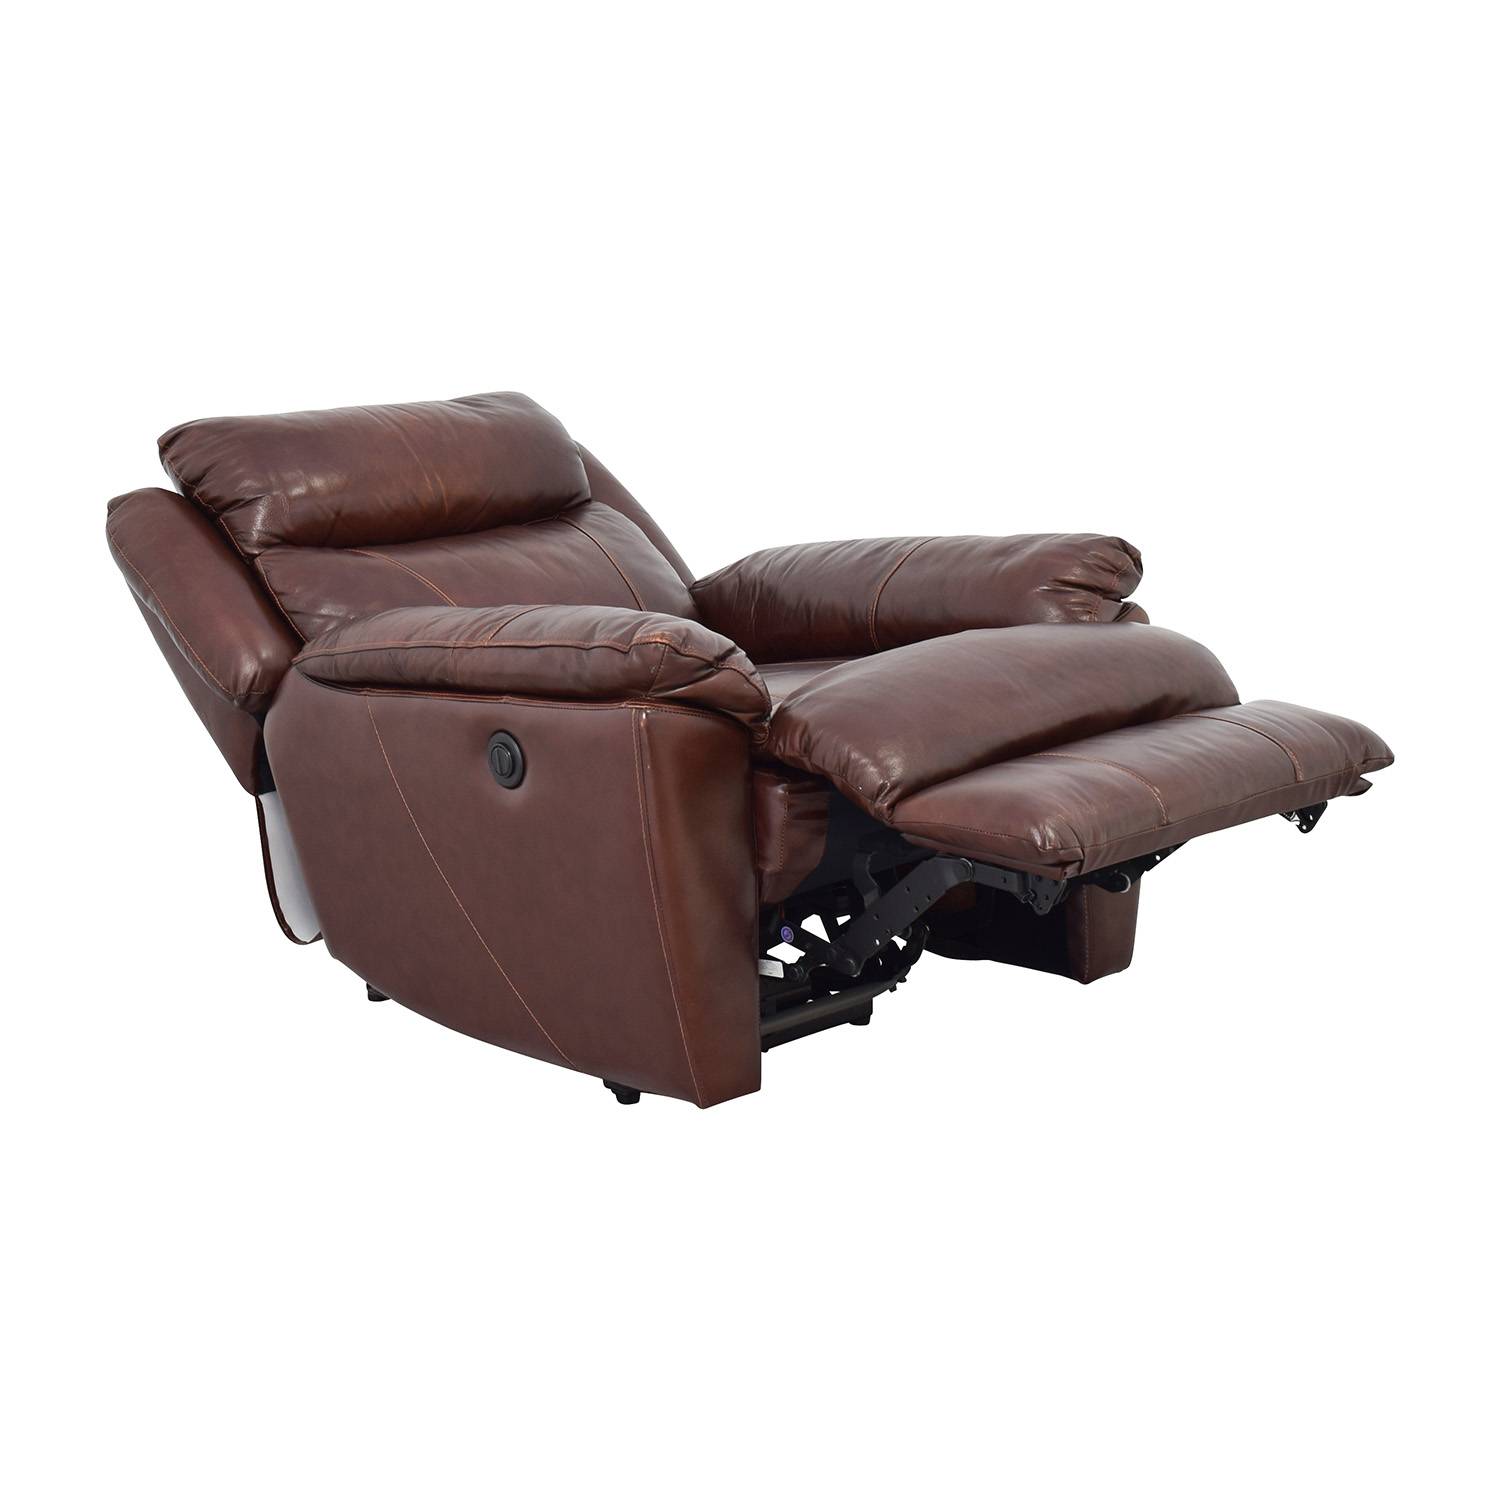 Macys Brown Leather Power Recliner / Chairs